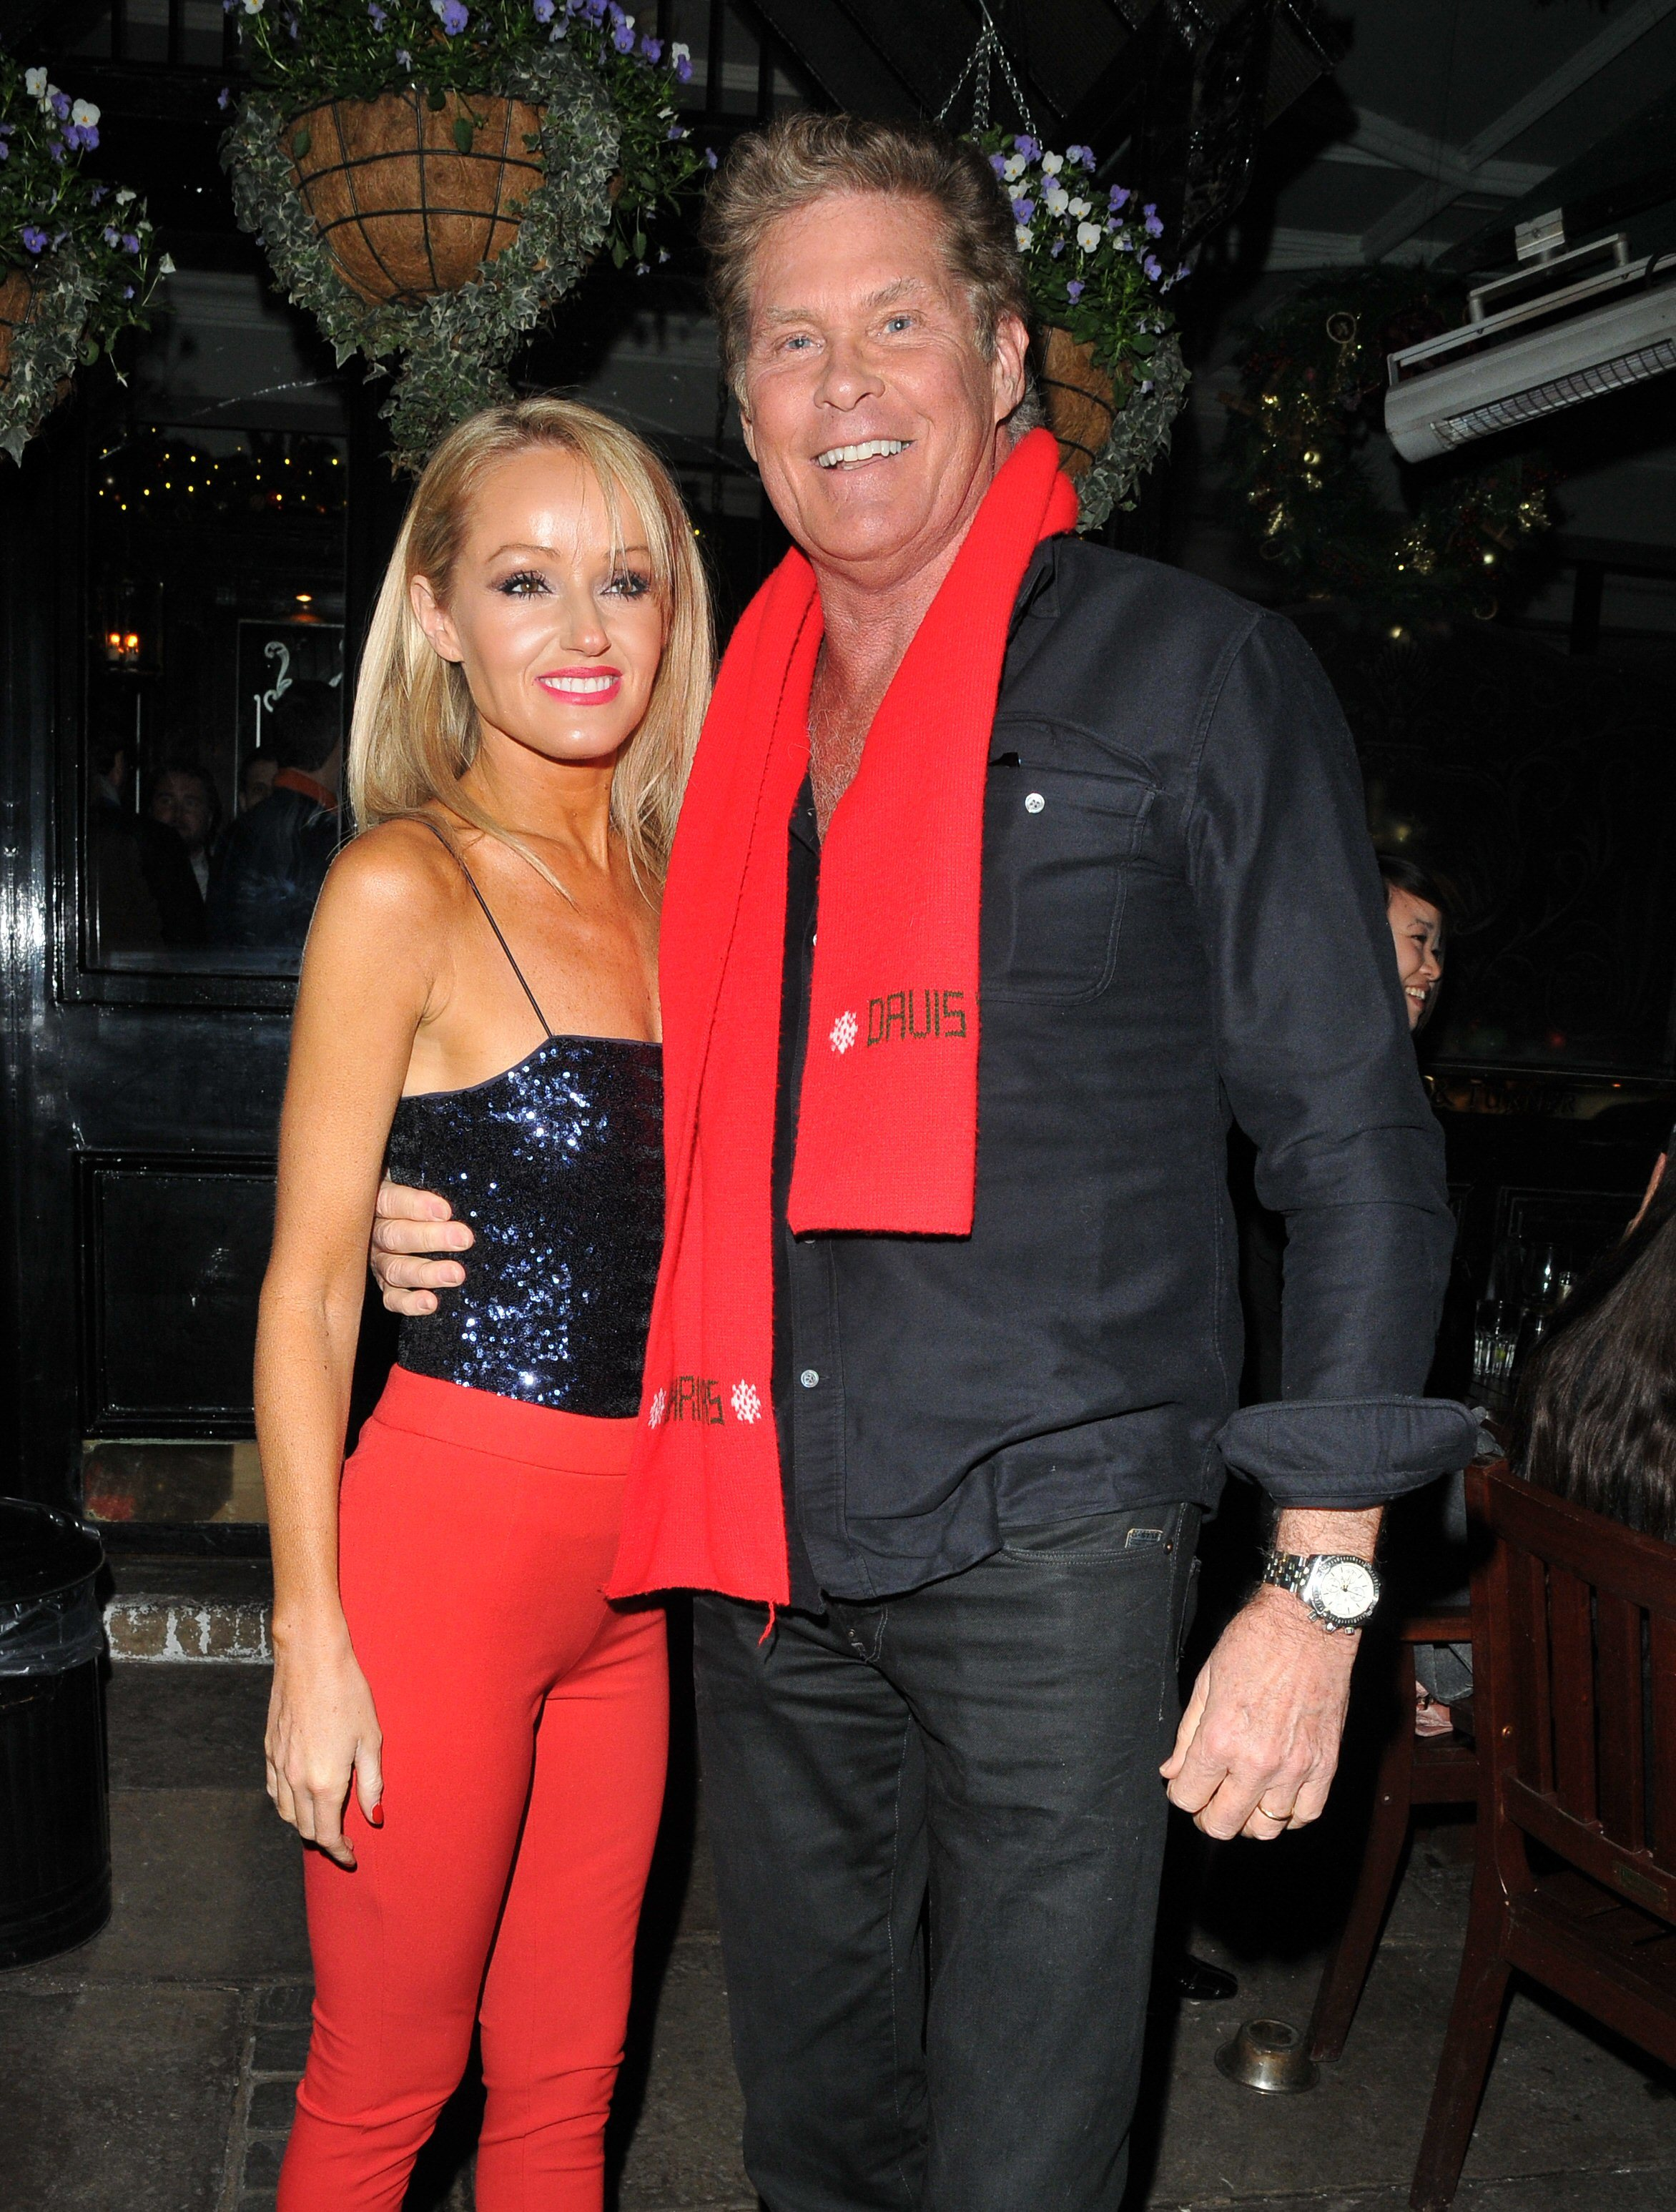 David Hasselhoff and Hayley Roberts attends the Piers Morgan's Christmas party in London on Dec. 20, 2018.